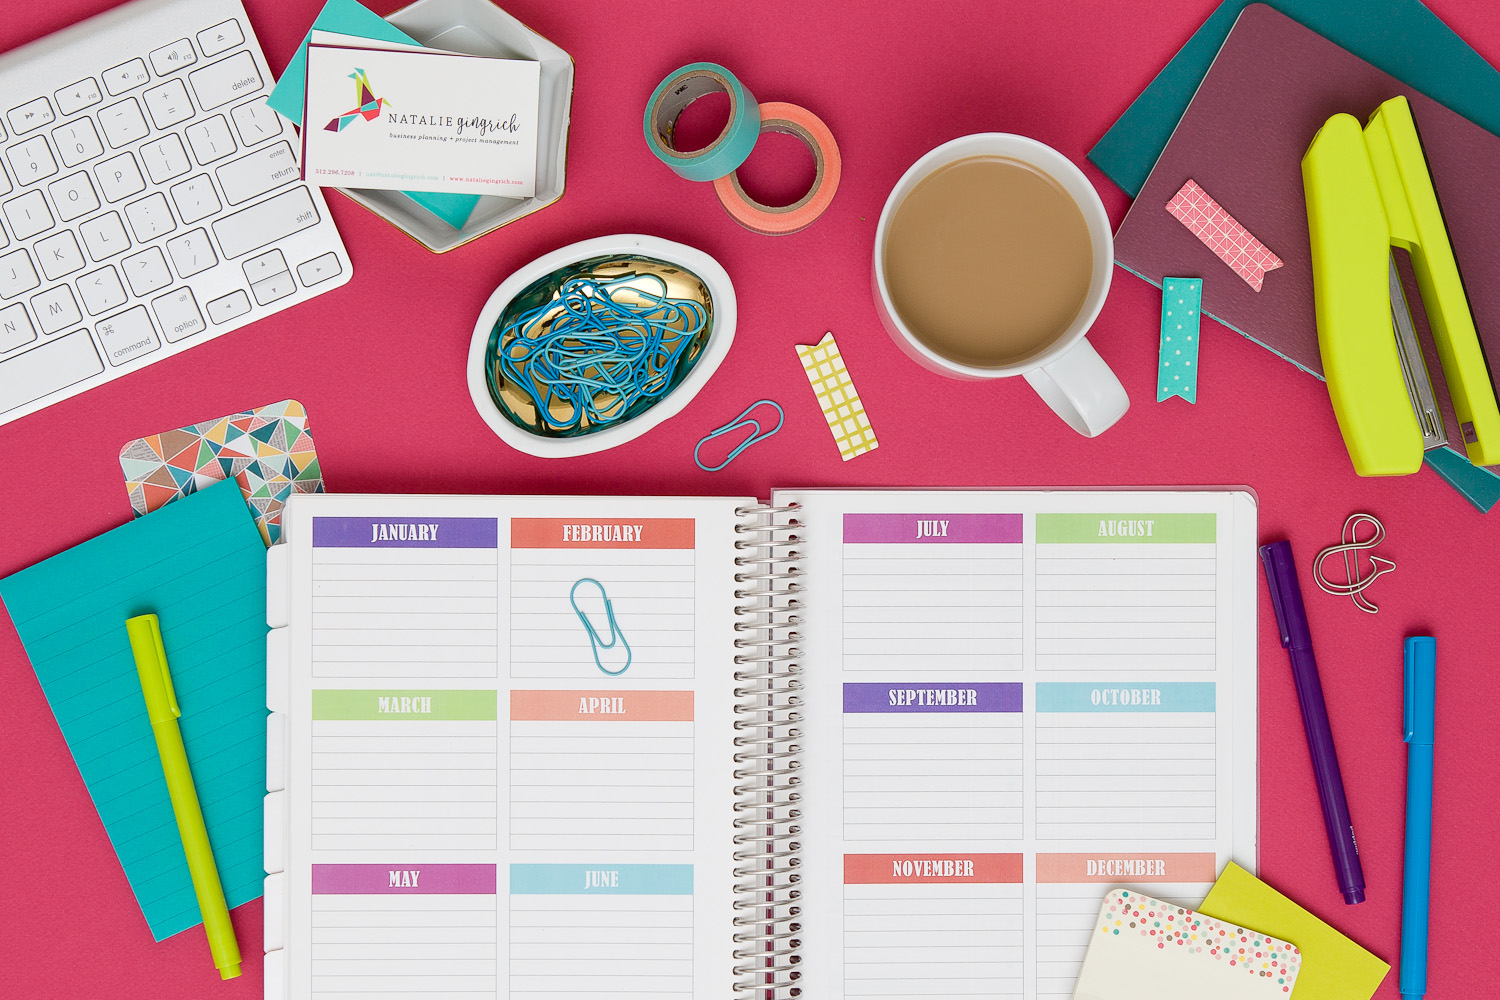 NGingrich-6web - yearly planner.jpg